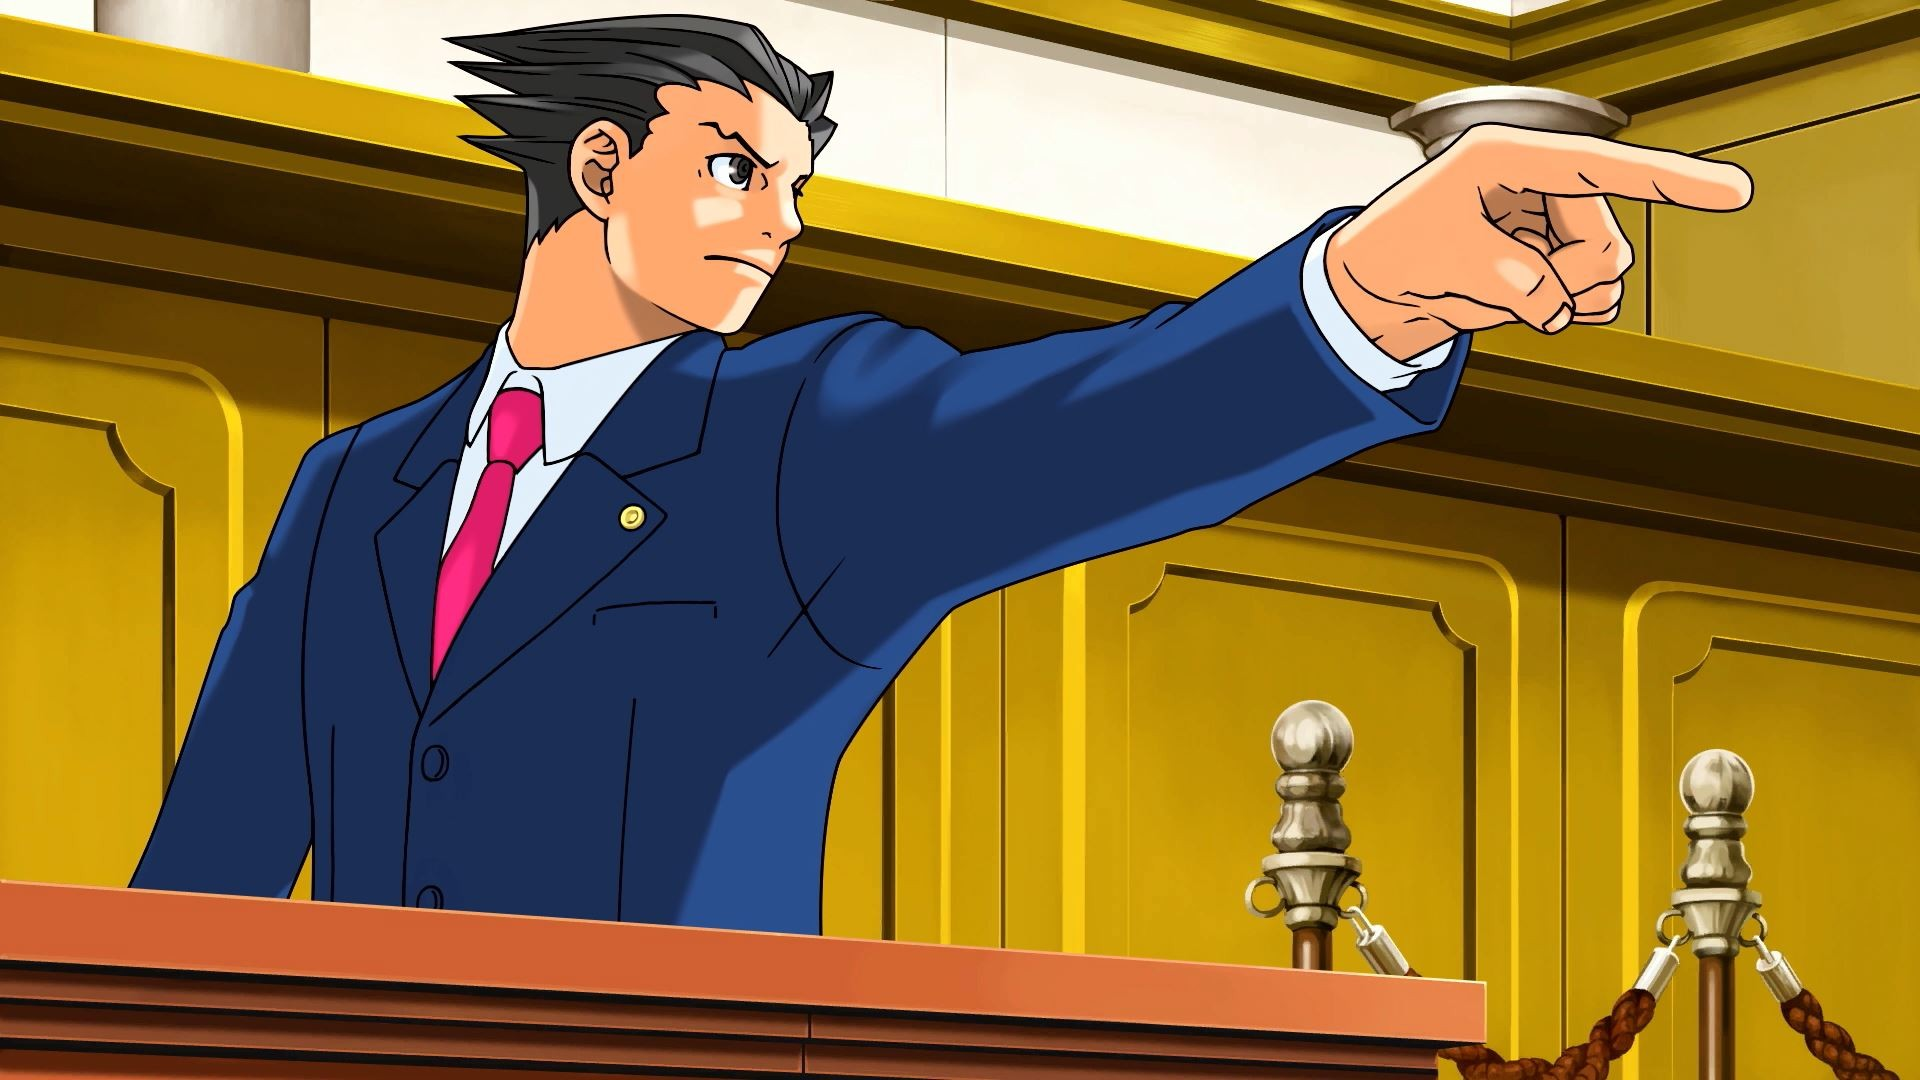 47490778442 5834f7c298 o - Phoenix Wright: Ace Attorney Trilogy erscheint morgen